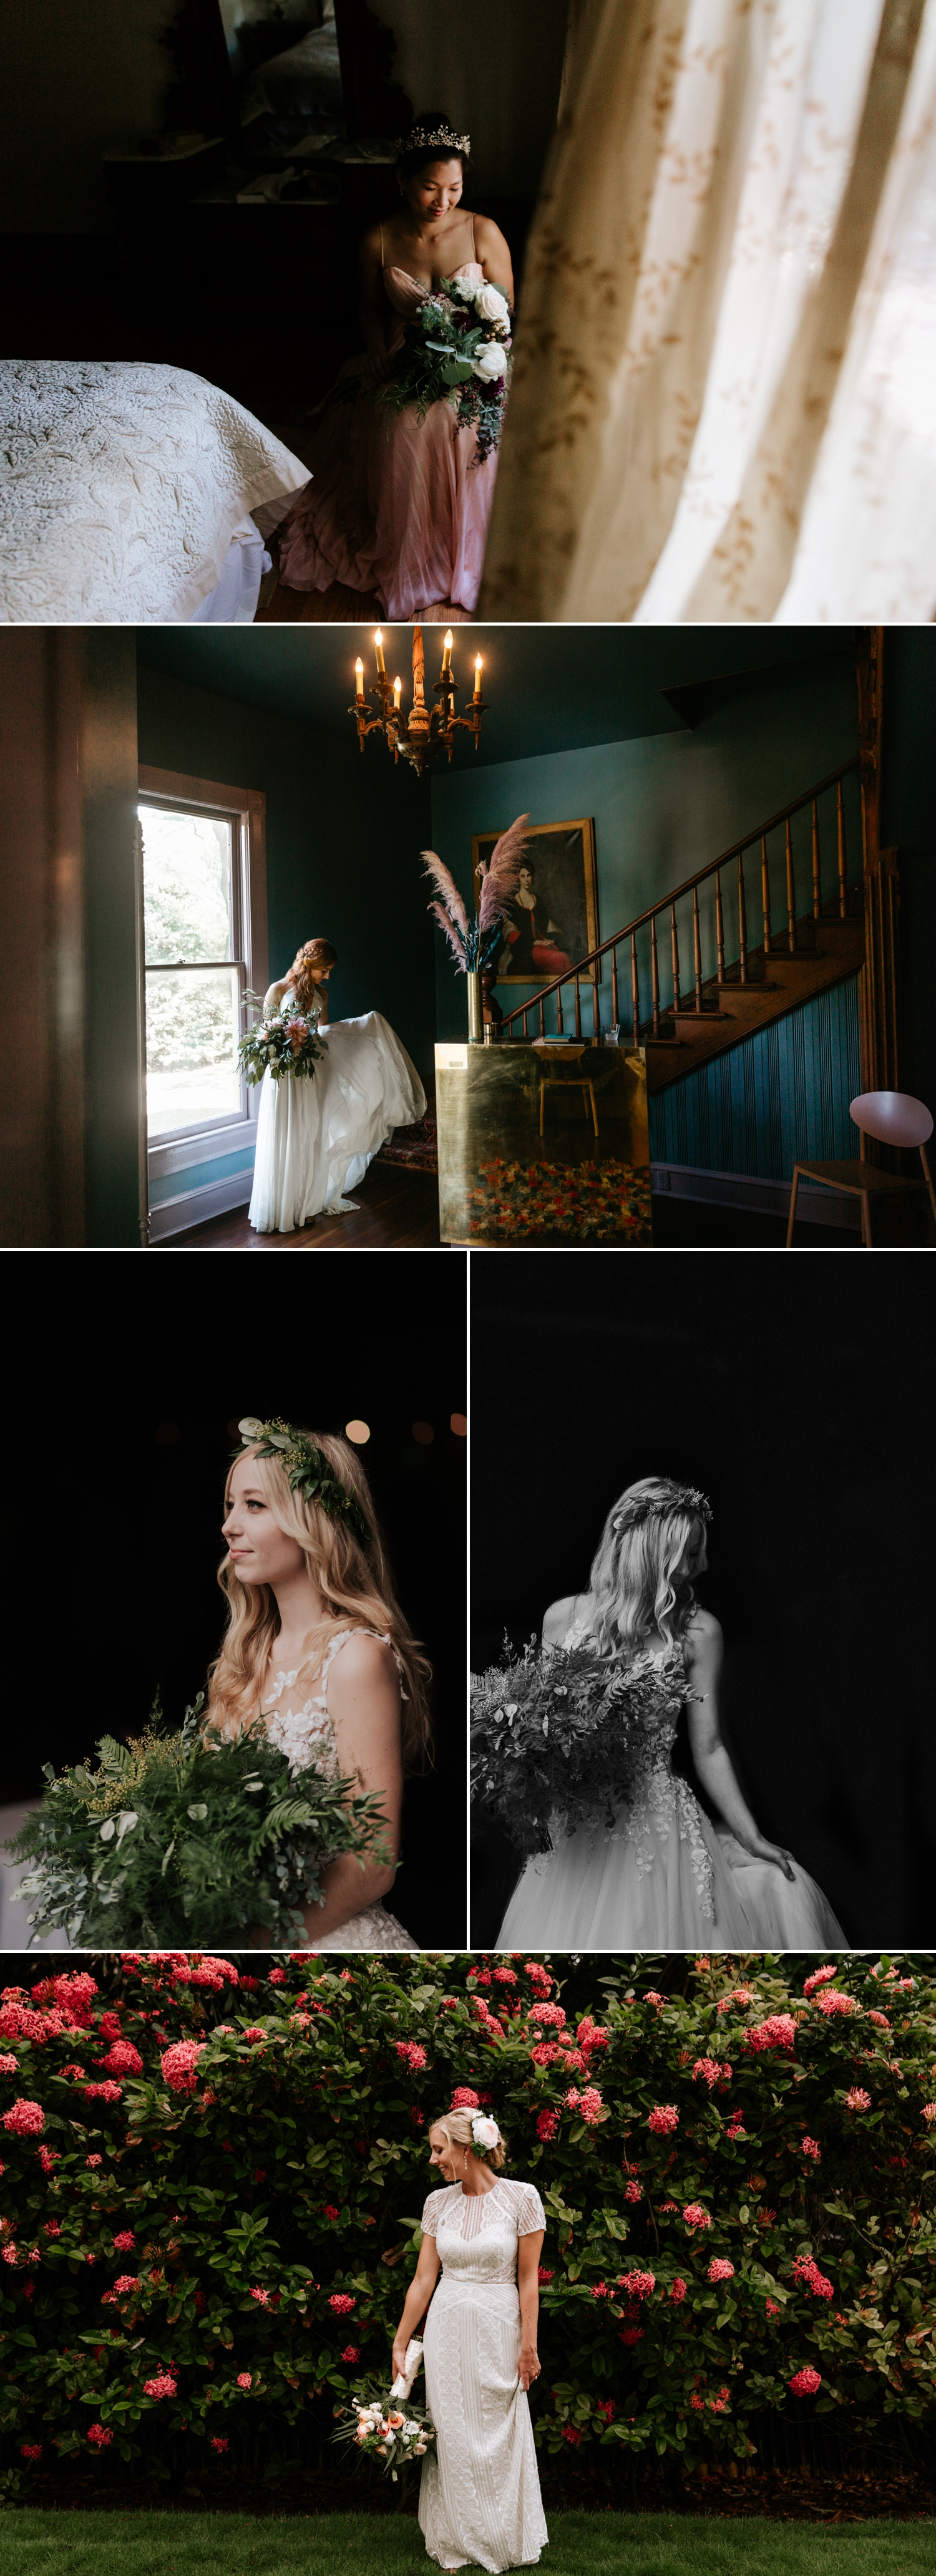 Best of 2017 Wedding moments by San Diego photographer Paige Nelson